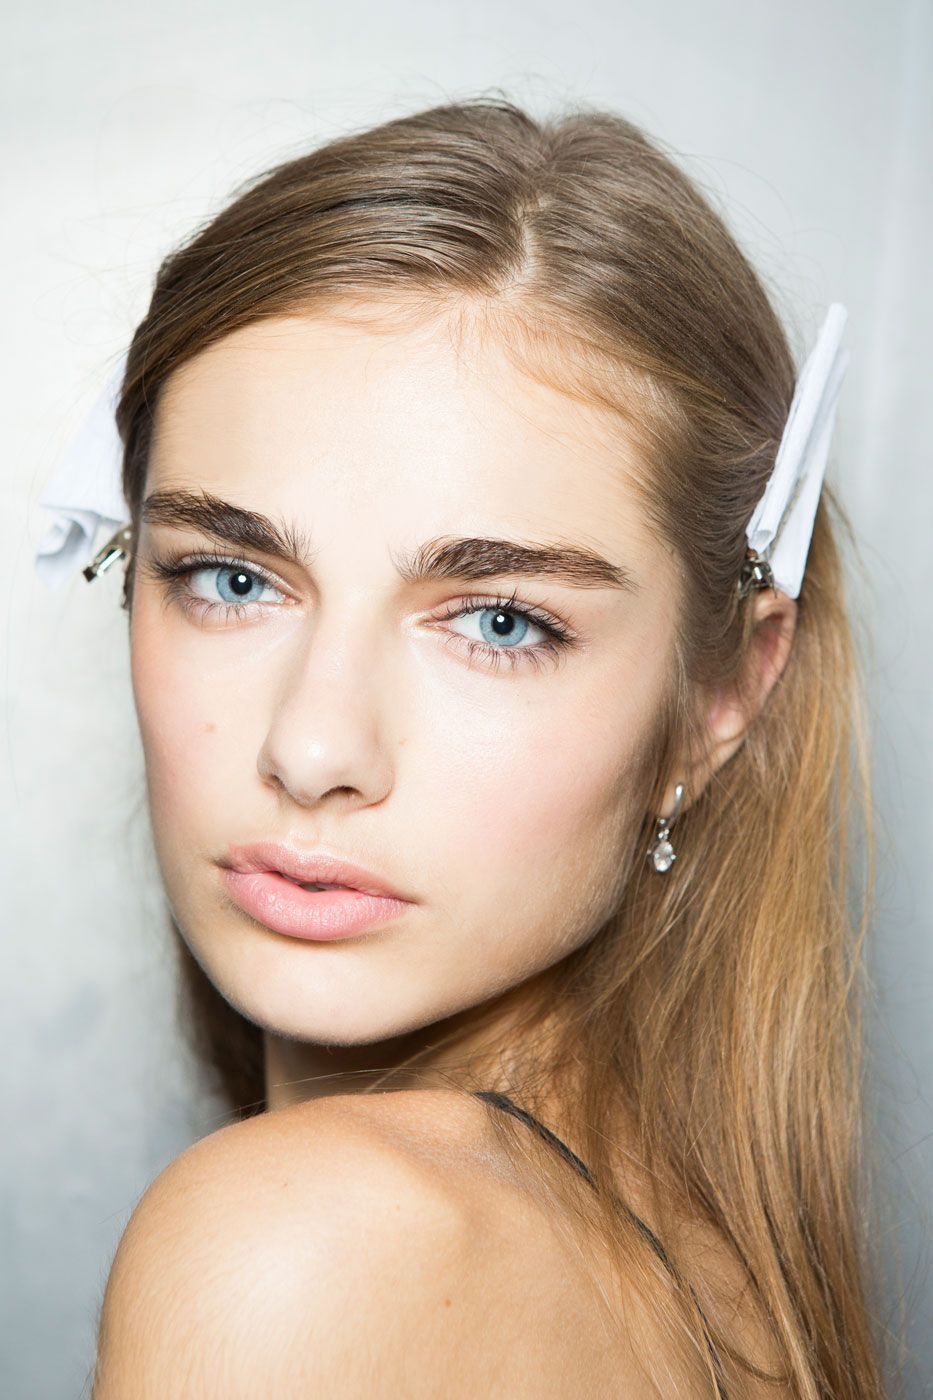 Clarifying Cleanser Thick eyebrows, Tweezing eyebrows